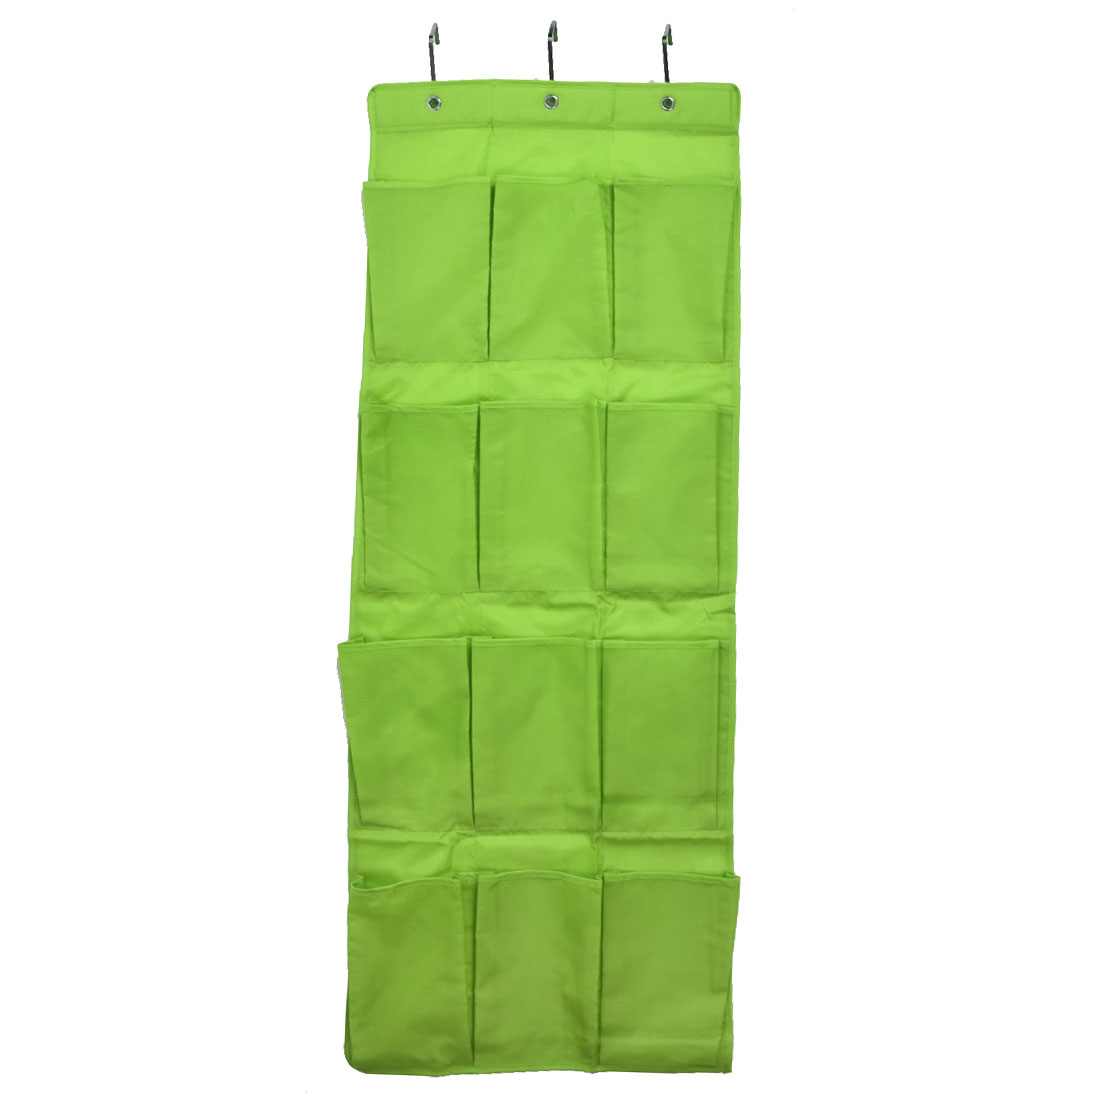 Household 12 Pockets Shoes Toiletry Cosmetic Hanging Organizer Holder Bag Green